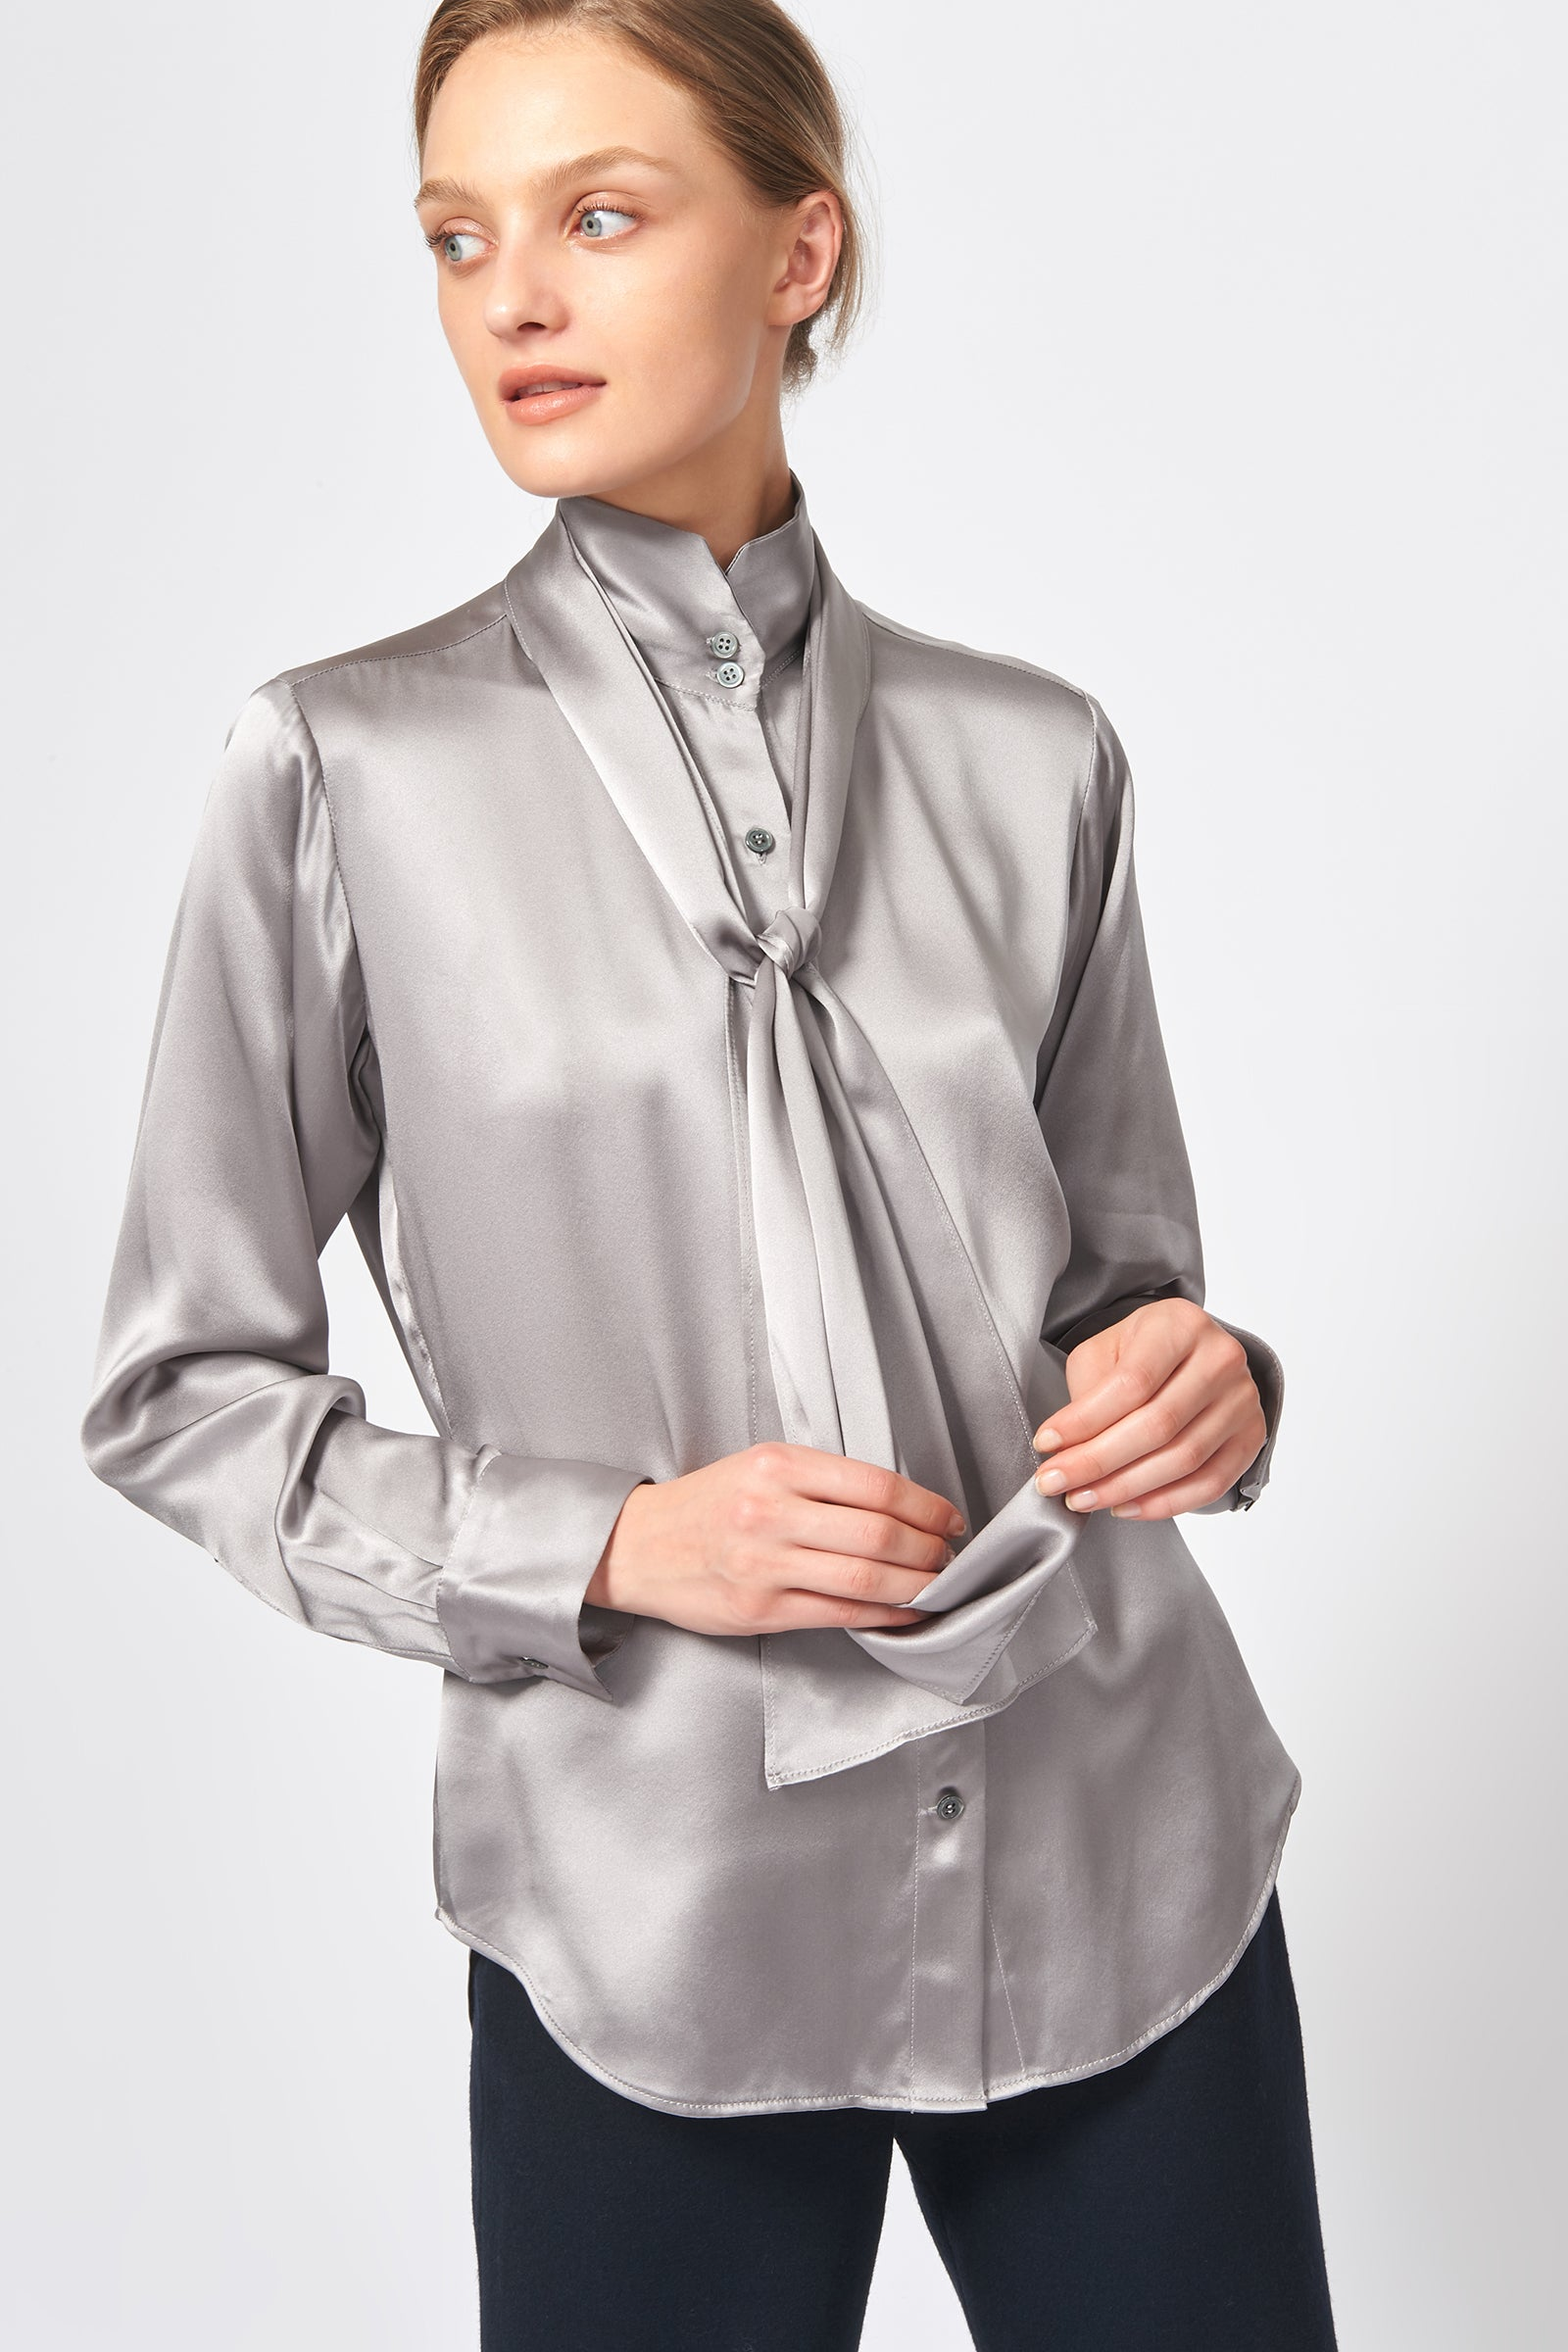 Kal Rieman Scarf Tie Blouse in Silver on Model Front View